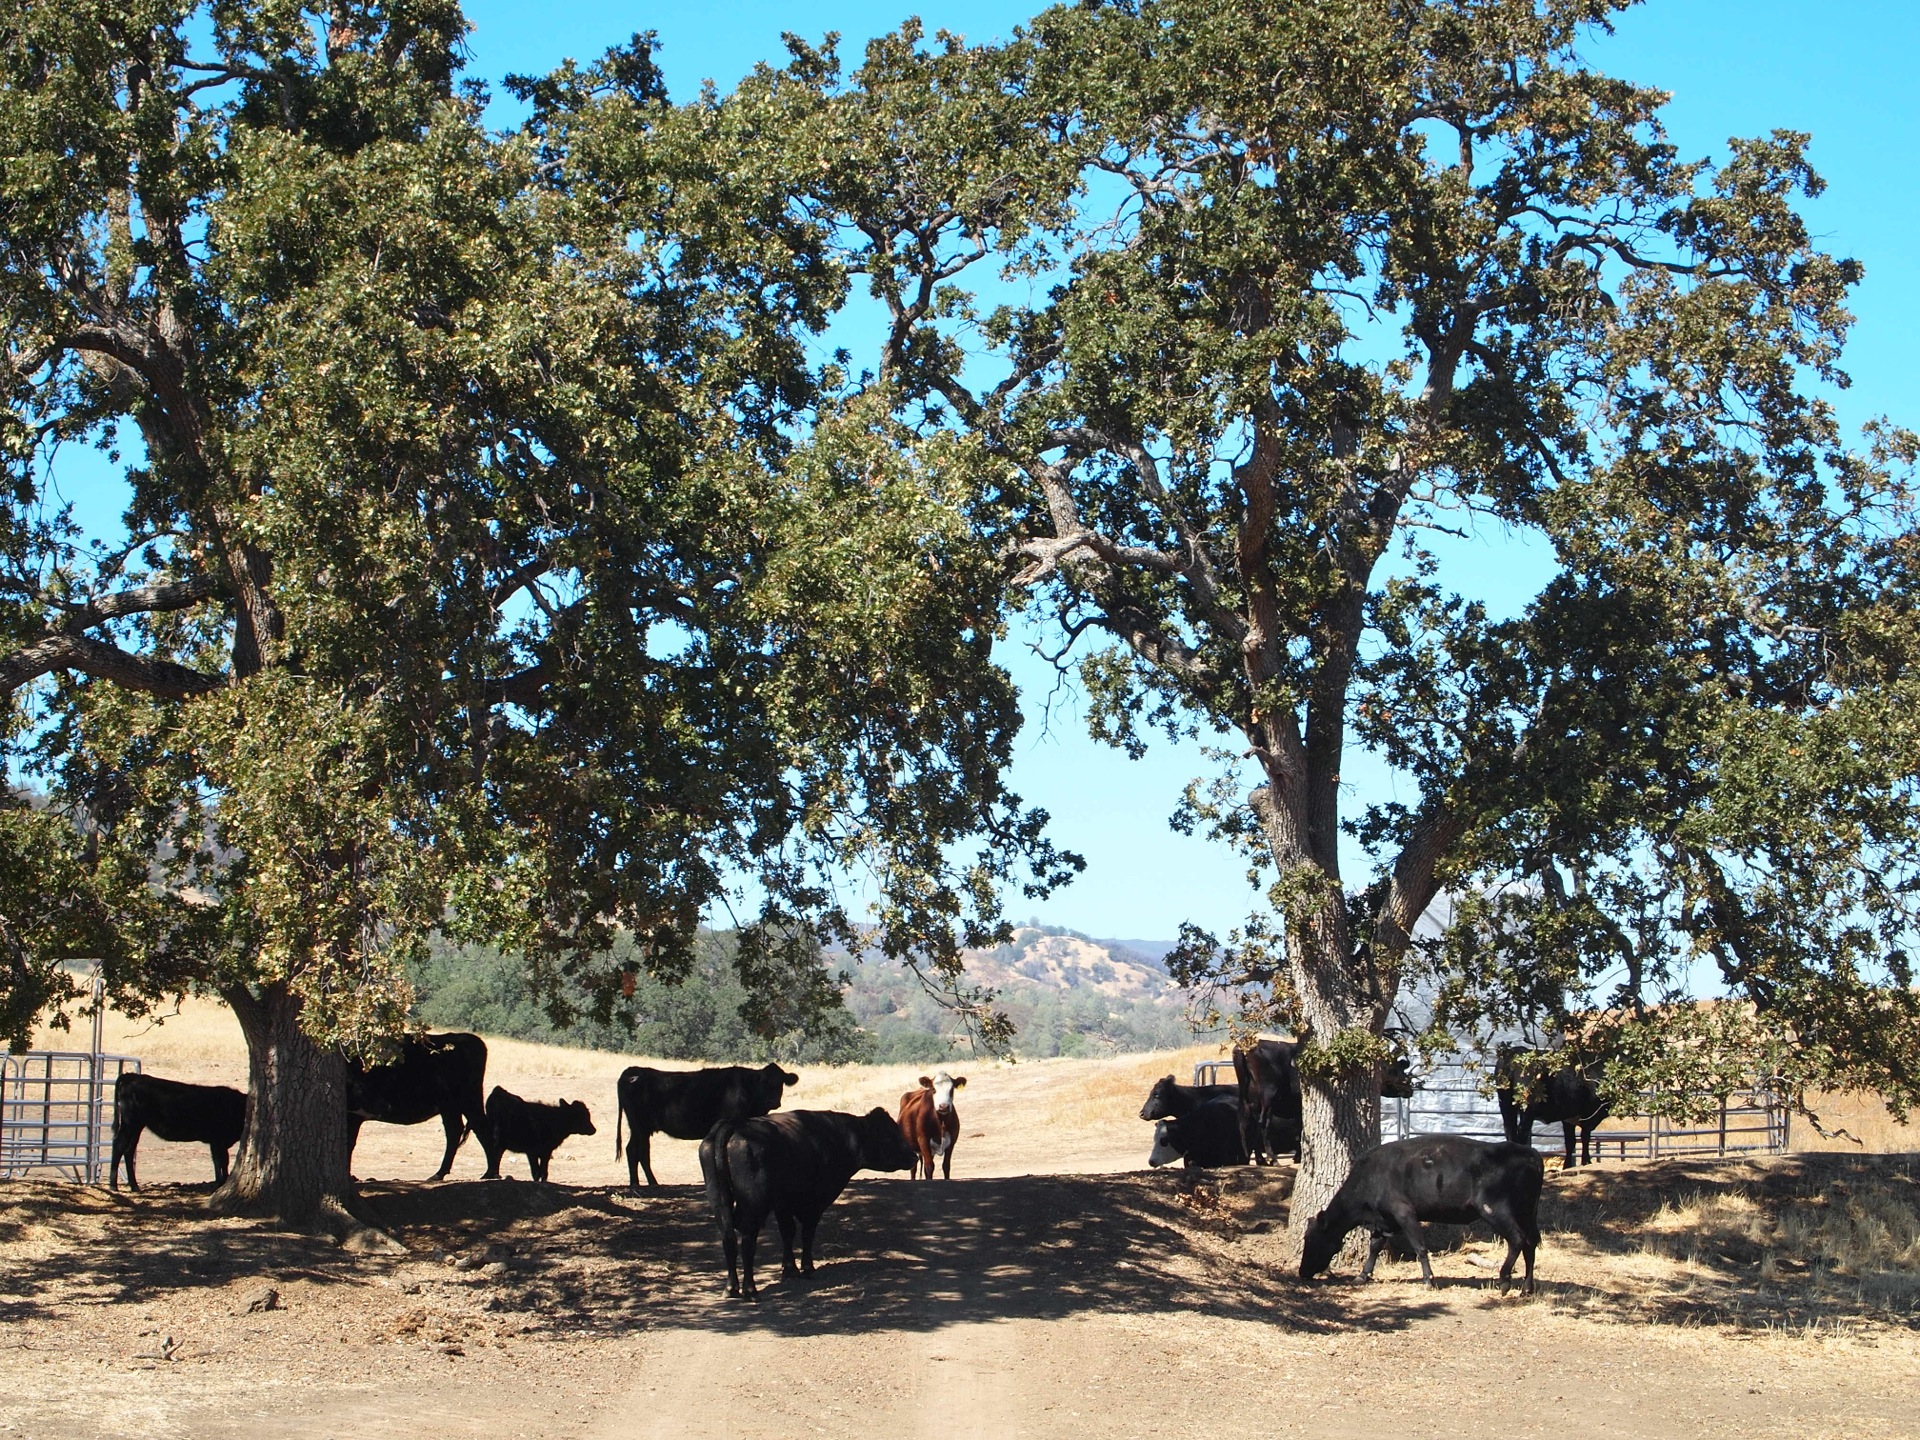 Cattle at the entrance